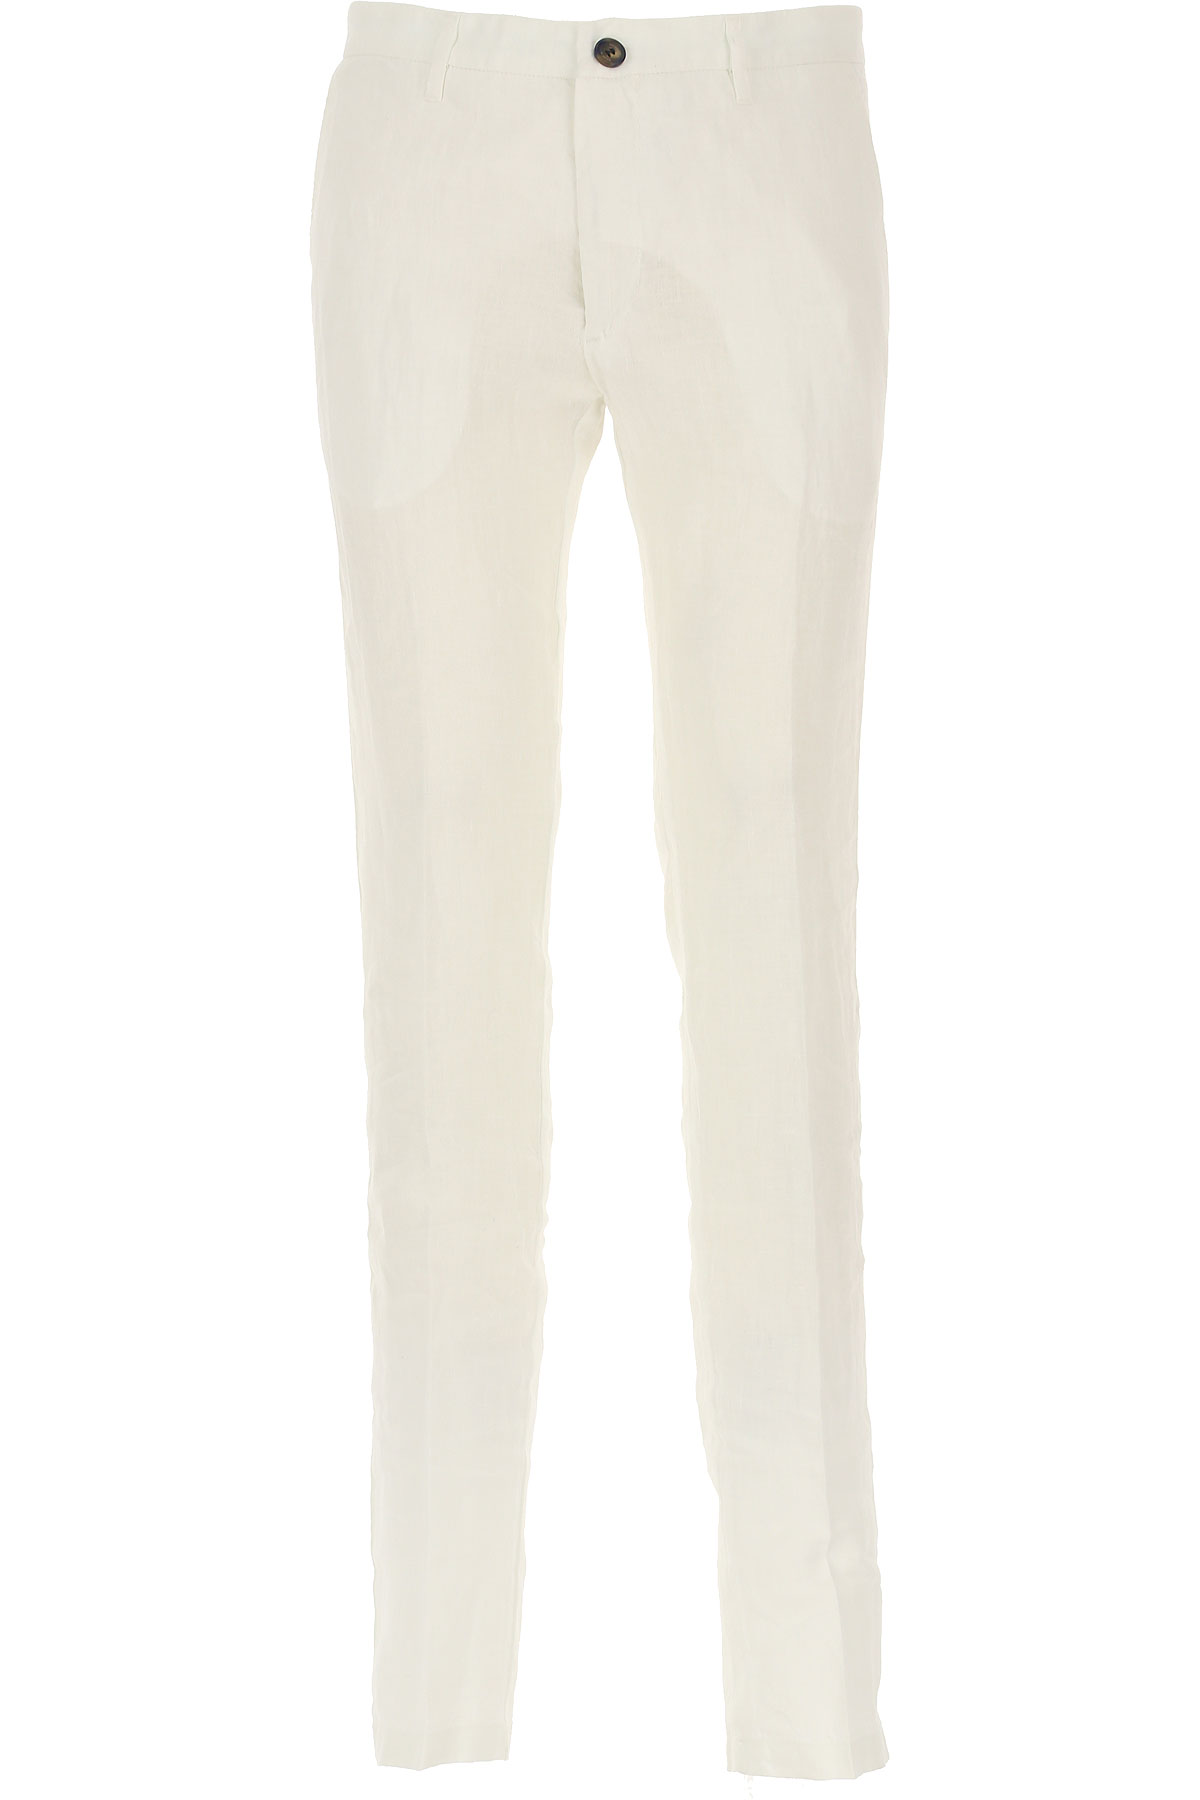 J.W. Brine Pants for Men, Natural, linen, 2019, 30 32 34 38